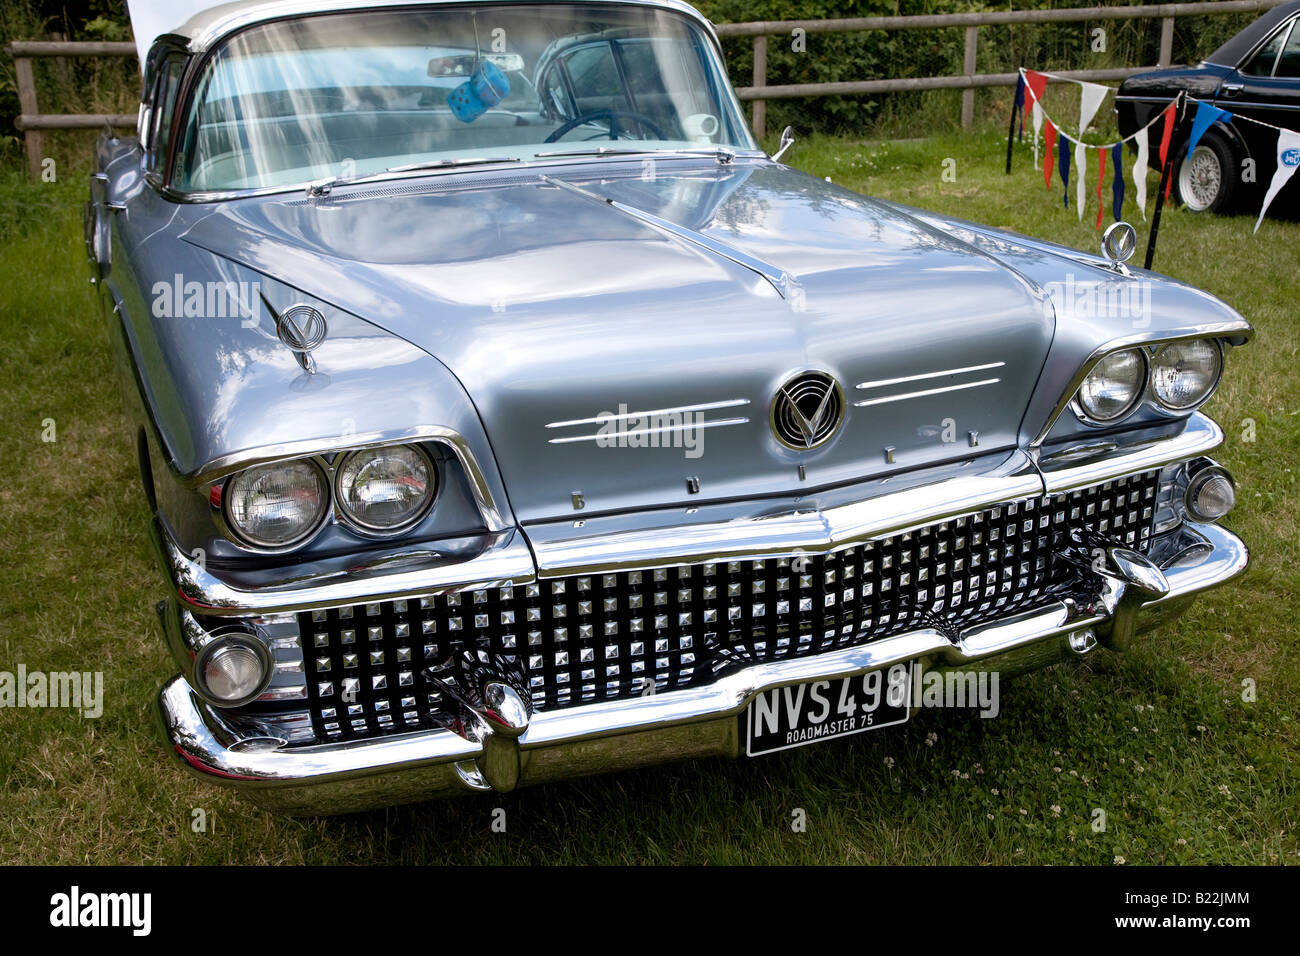 Buick Muscle Car >> A Classic Buick Muscle Car Stock Photo 18498276 Alamy